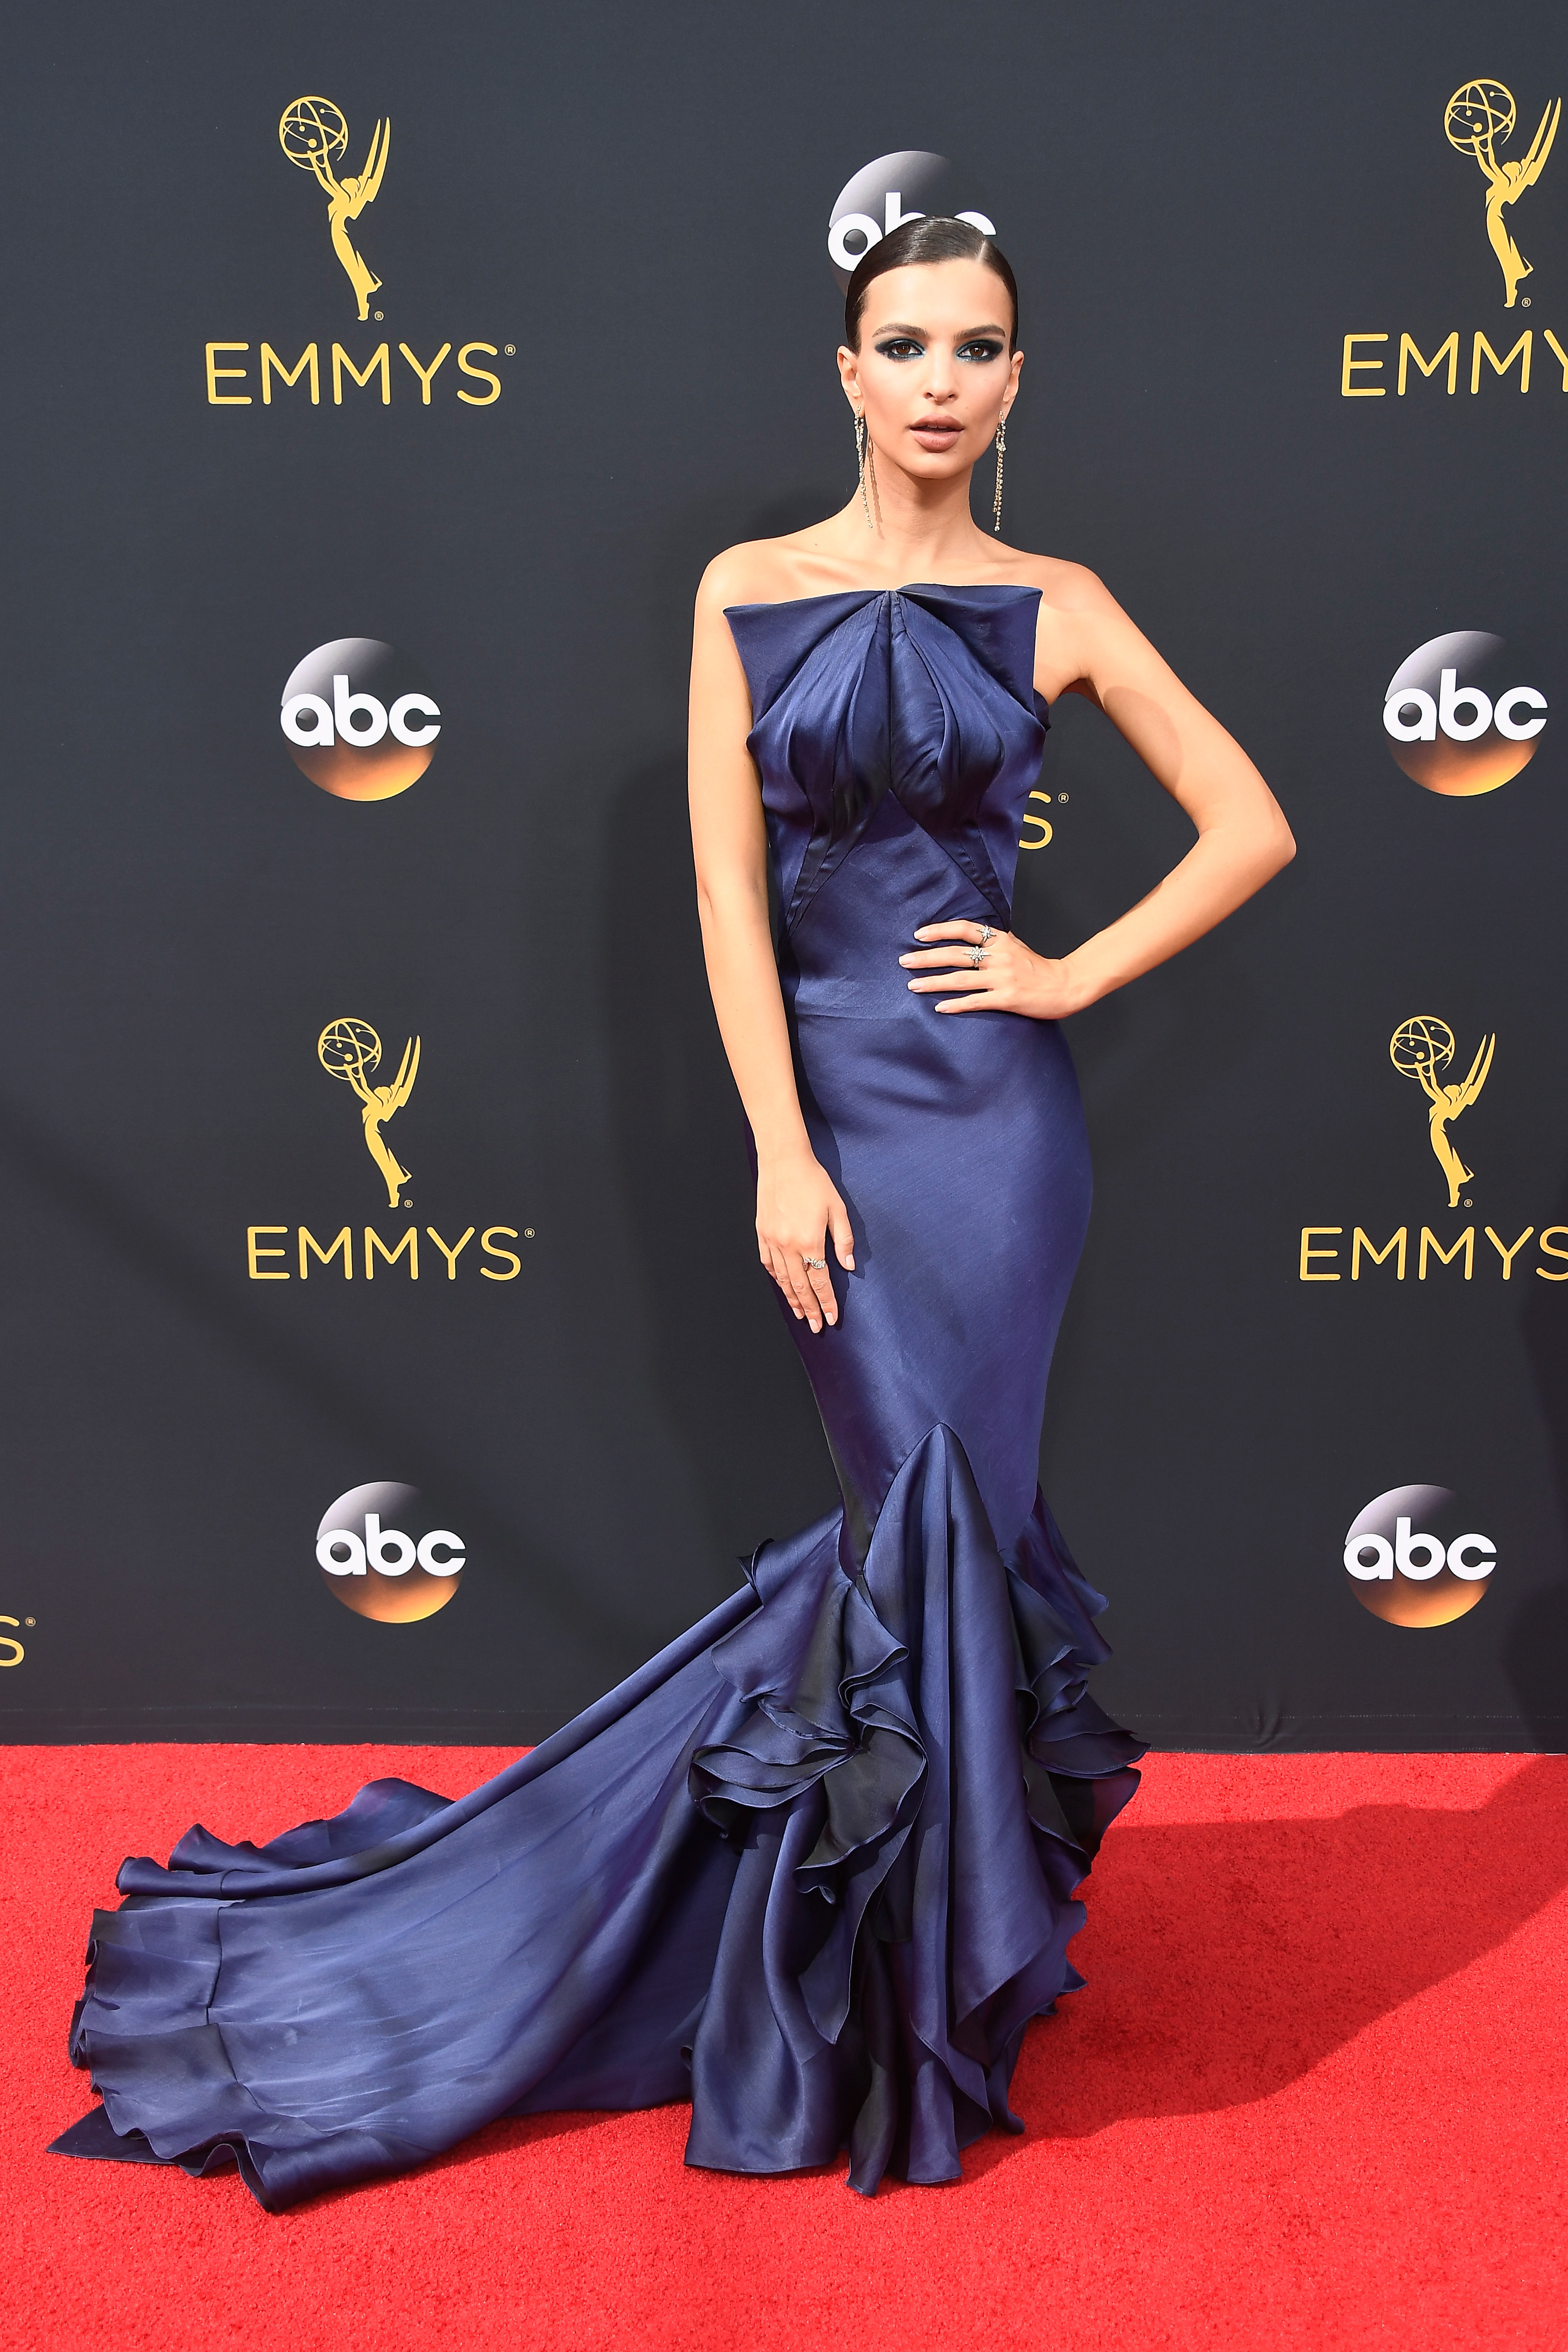 Emily Ratajkowski arrives at the 68th Annual Primetime Emmy Awards at Microsoft Theater on Sept. 18, 2016 in Los Angeles.